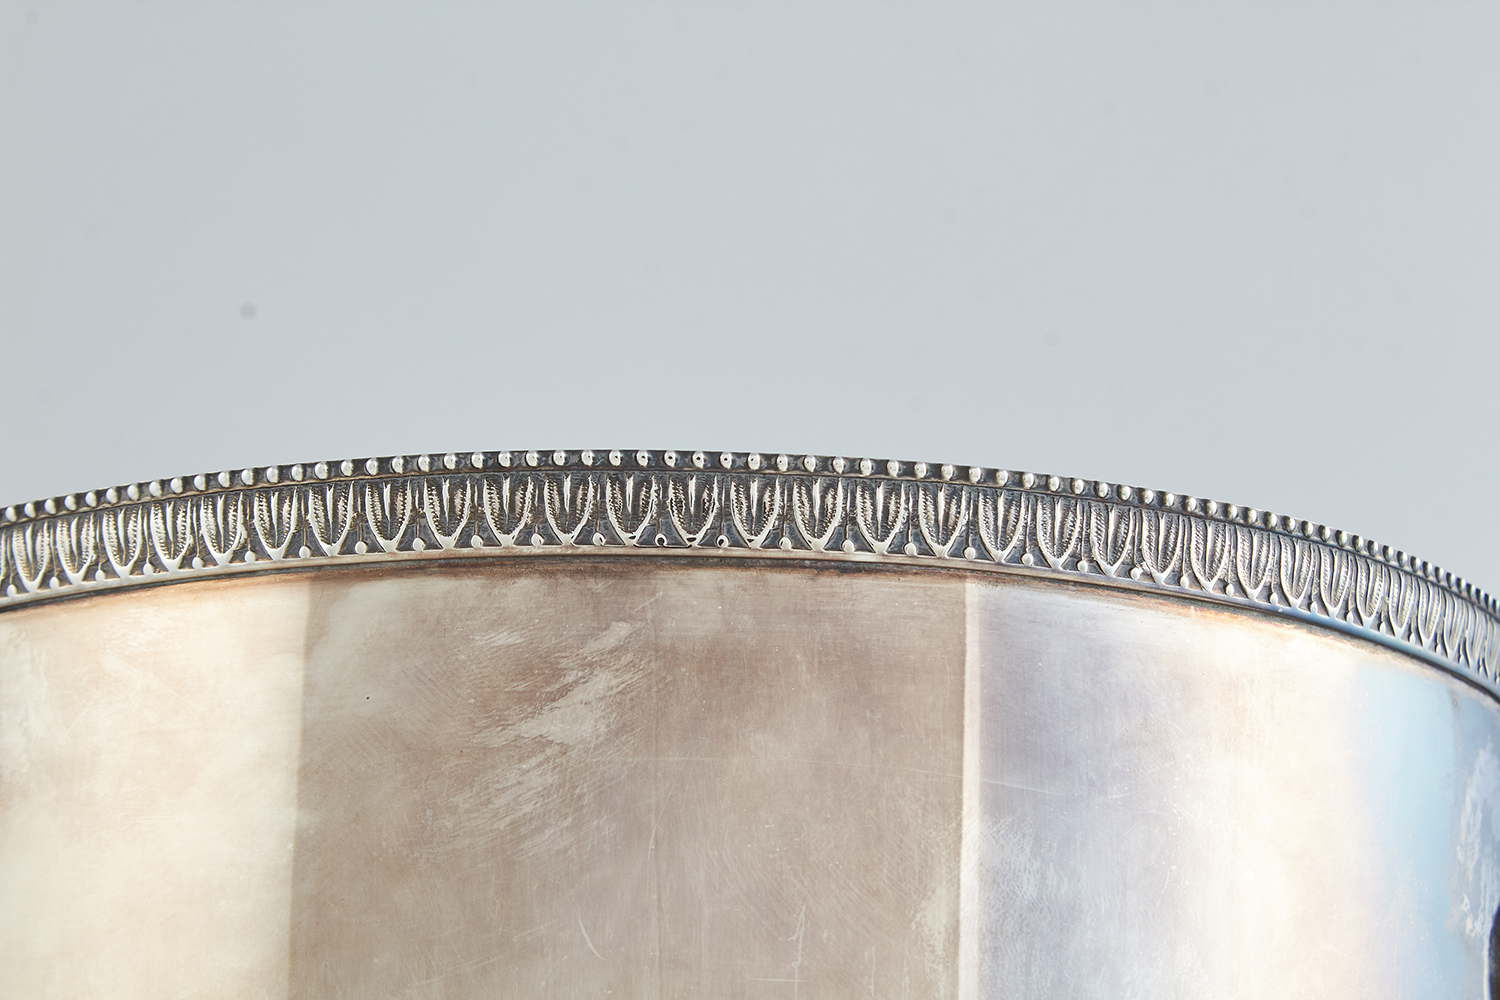 VINTAGE ITALIAN SILVER WINE COOLER BY CALDERONI, CIRCA 1960 the tapering body in plain design, - Image 4 of 4